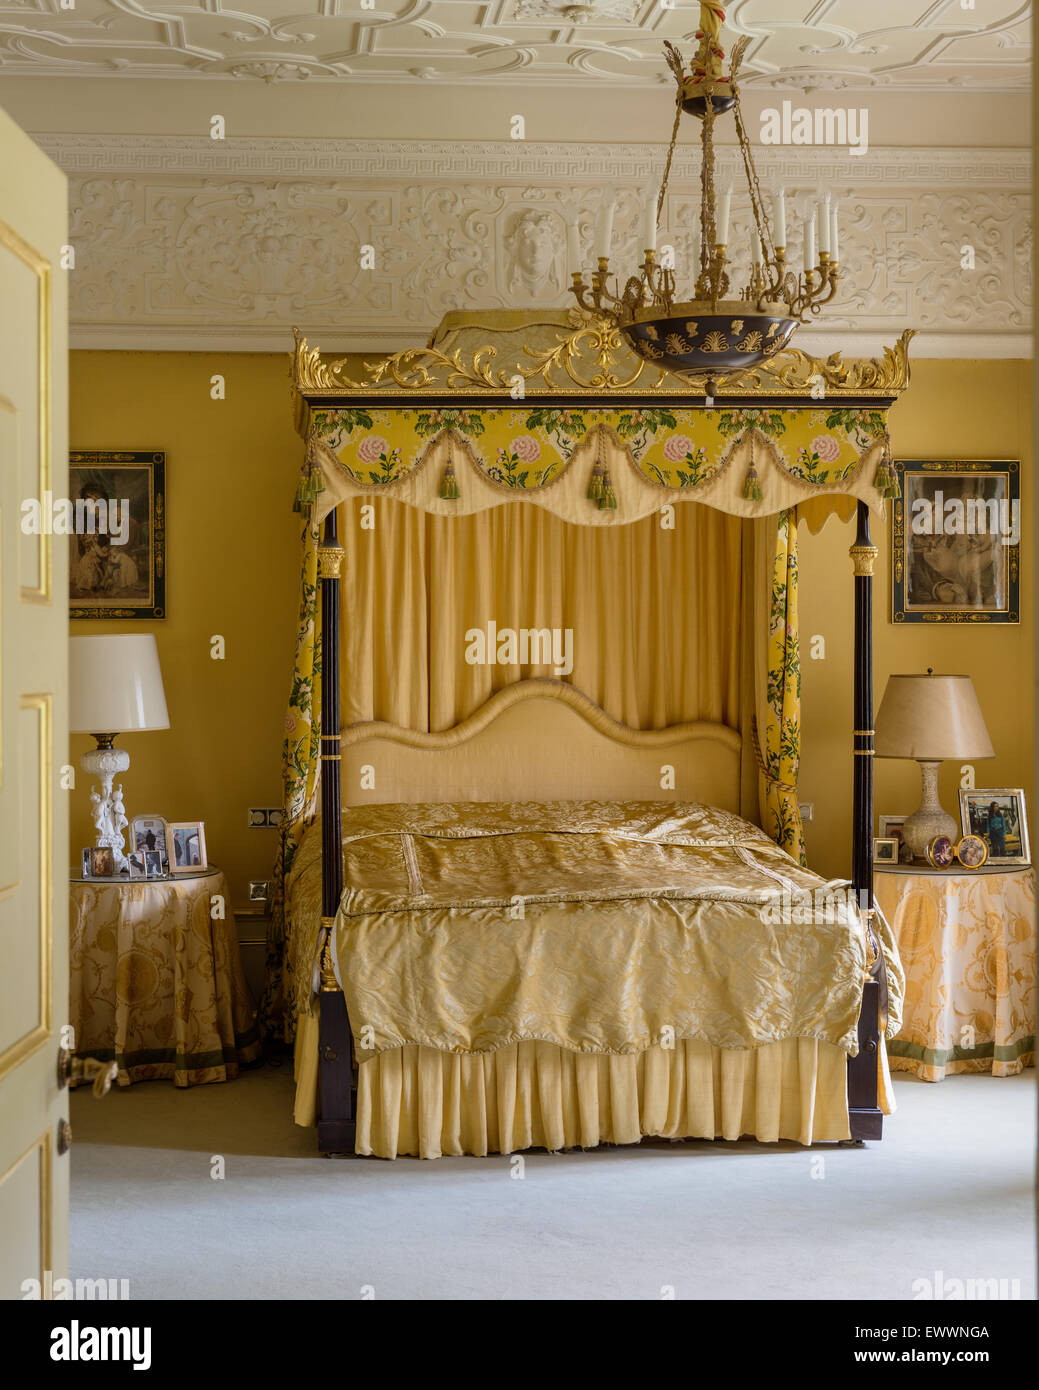 Four poster bed with gilt framework in sumptous bedroom with stucco ceiling - Stock Image